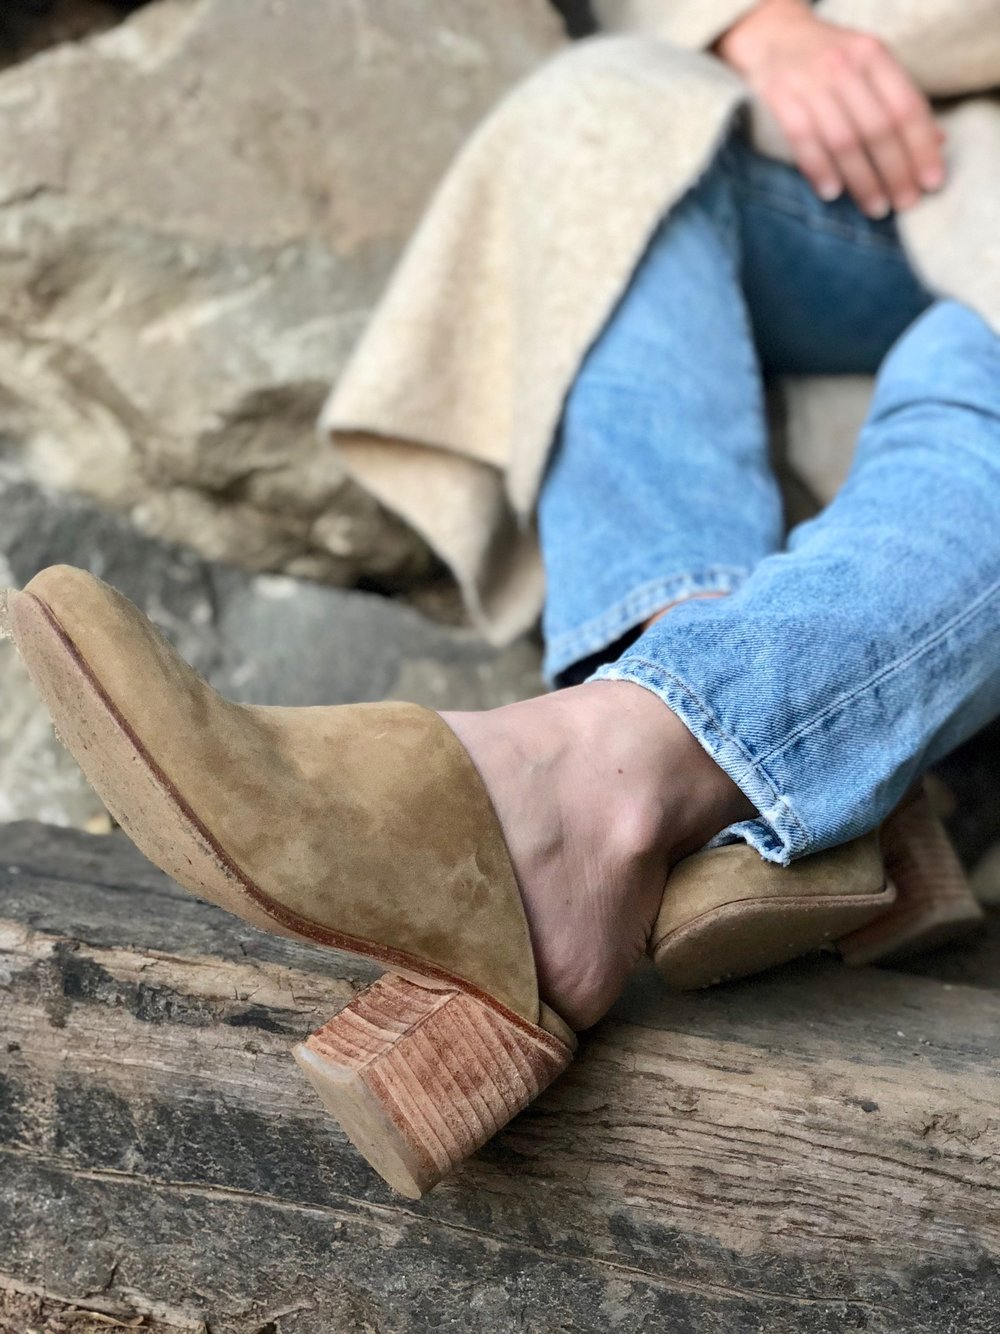 Nisolo Mules for everyday shoes // A Week Of Tried-And-True Wardrobe Staples With Zoe Cleary, Founder Of Nisolo on The Good Trade